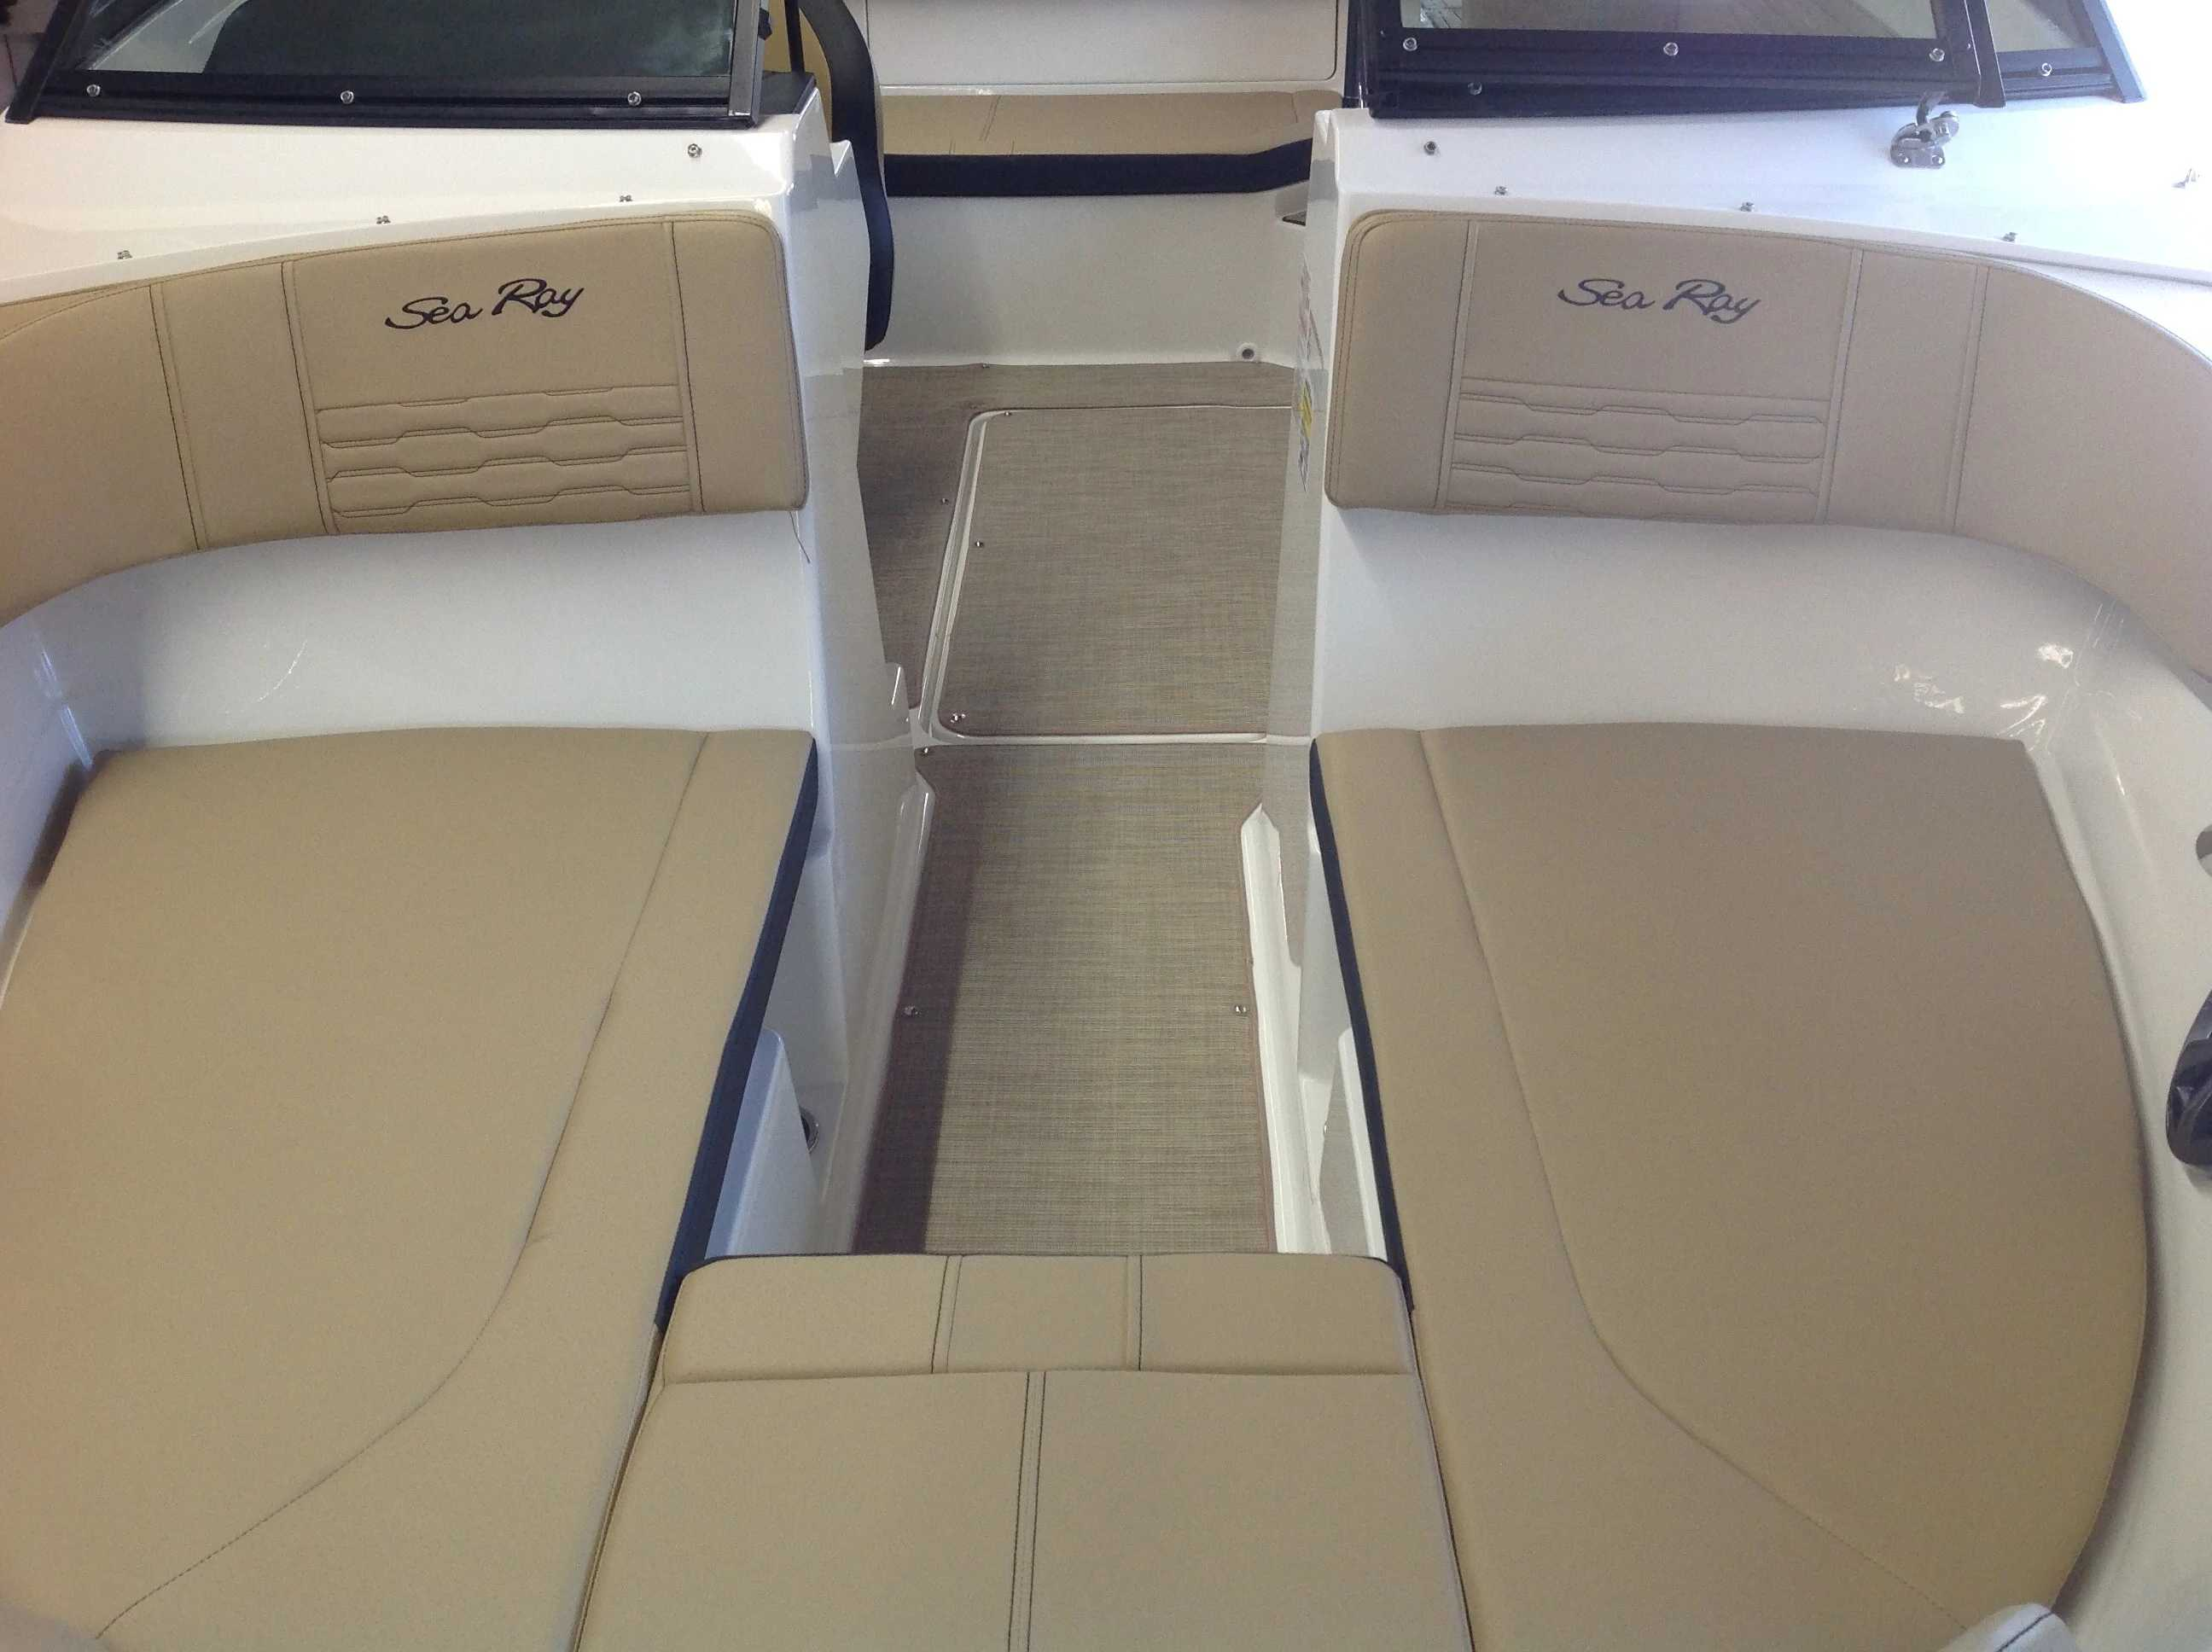 2021 Sea Ray boat for sale, model of the boat is 190 spxo & Image # 5 of 14